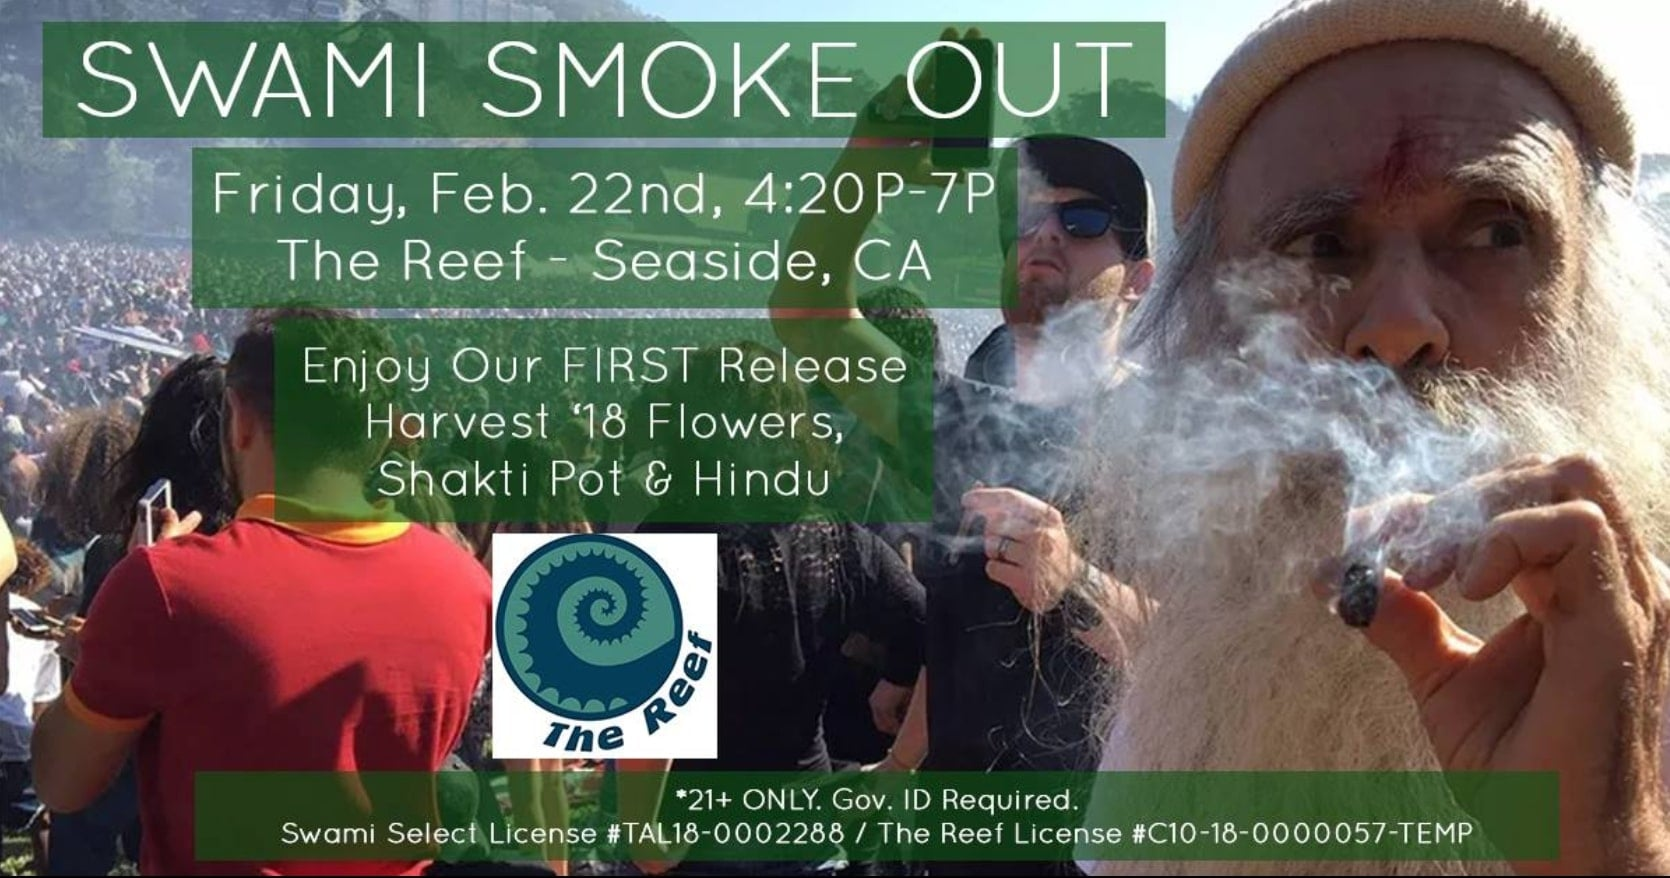 Swami Smoke Out at Monterey Bay Reef Seaside, Feb. 22nd, 4:20 PM - 7 PM